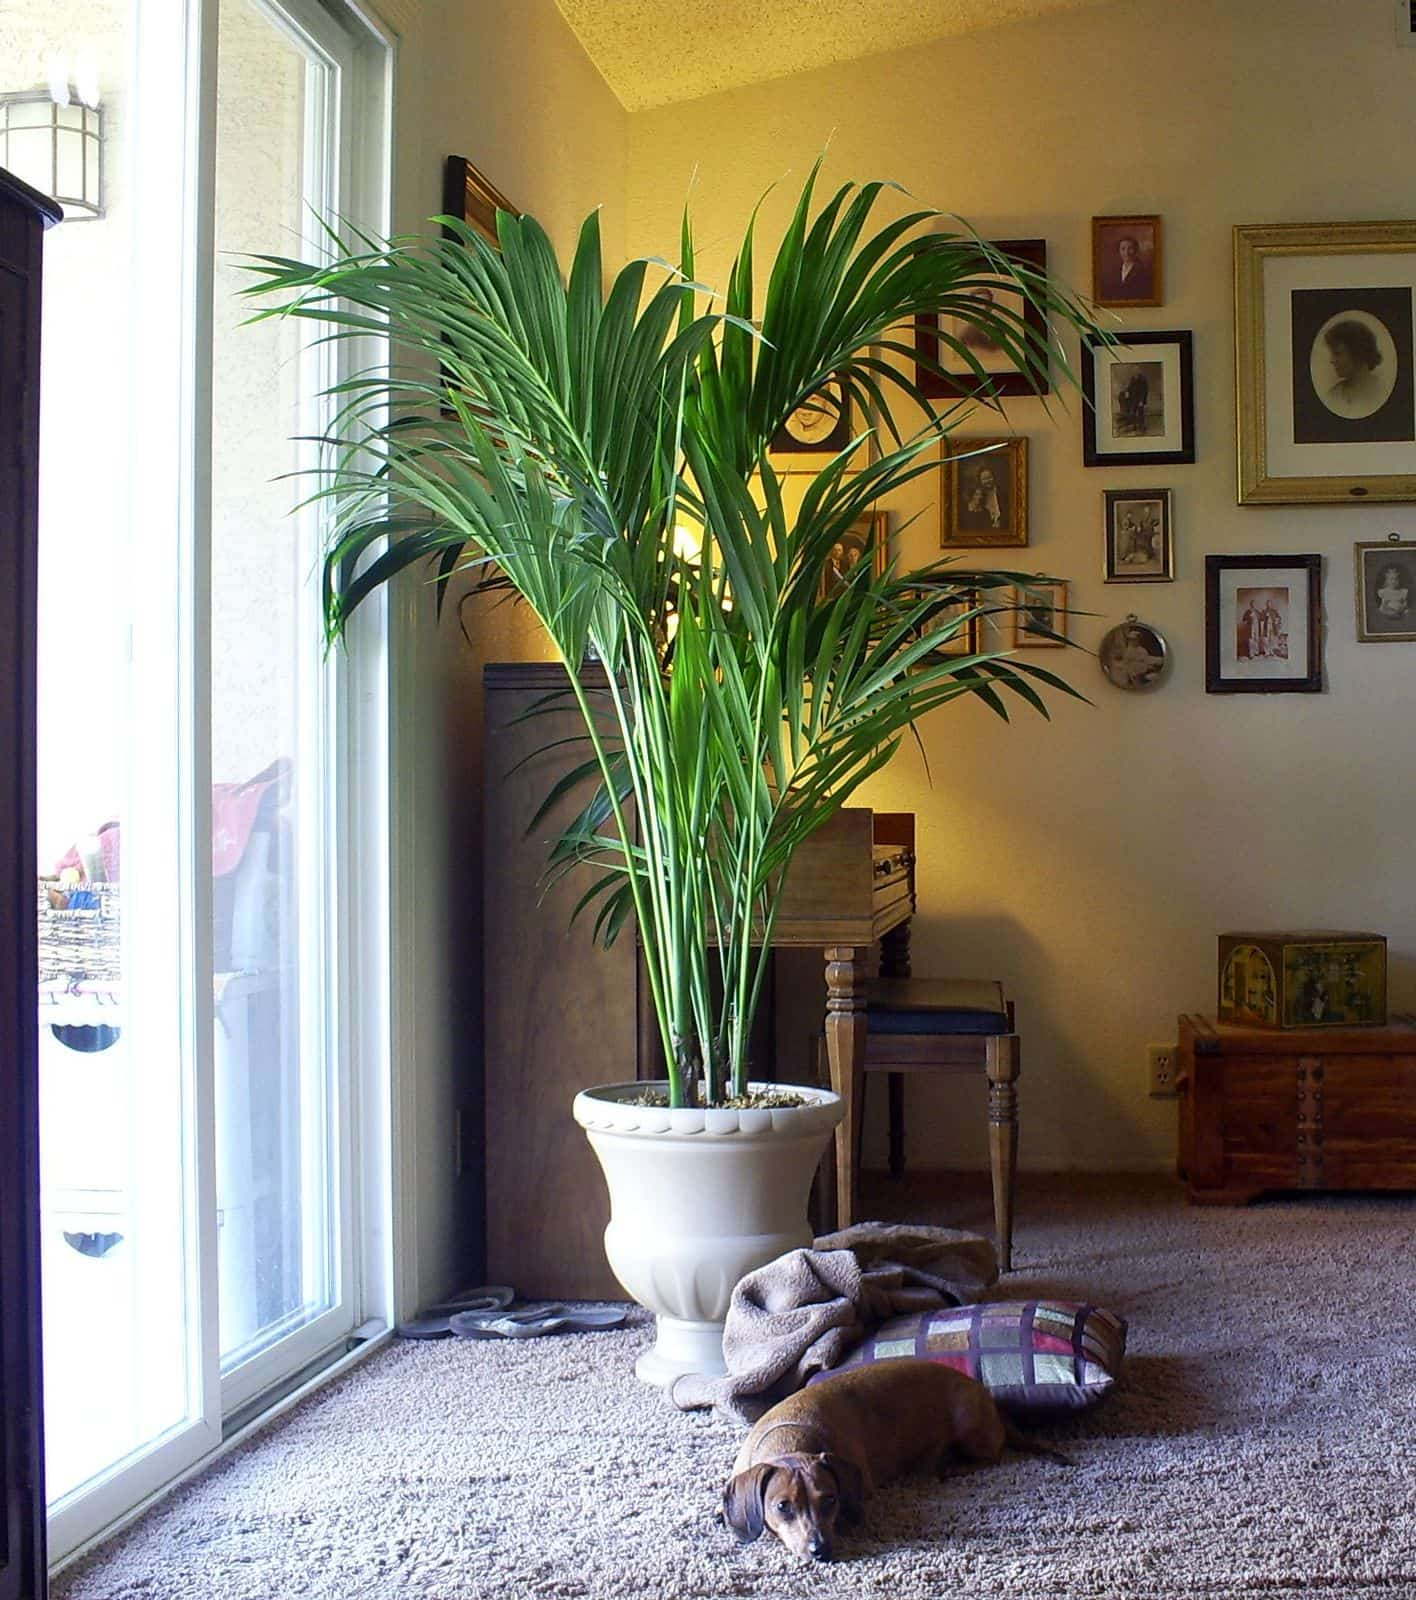 8 Best Large House Plants to Use for Décor. Family room with kentia palm